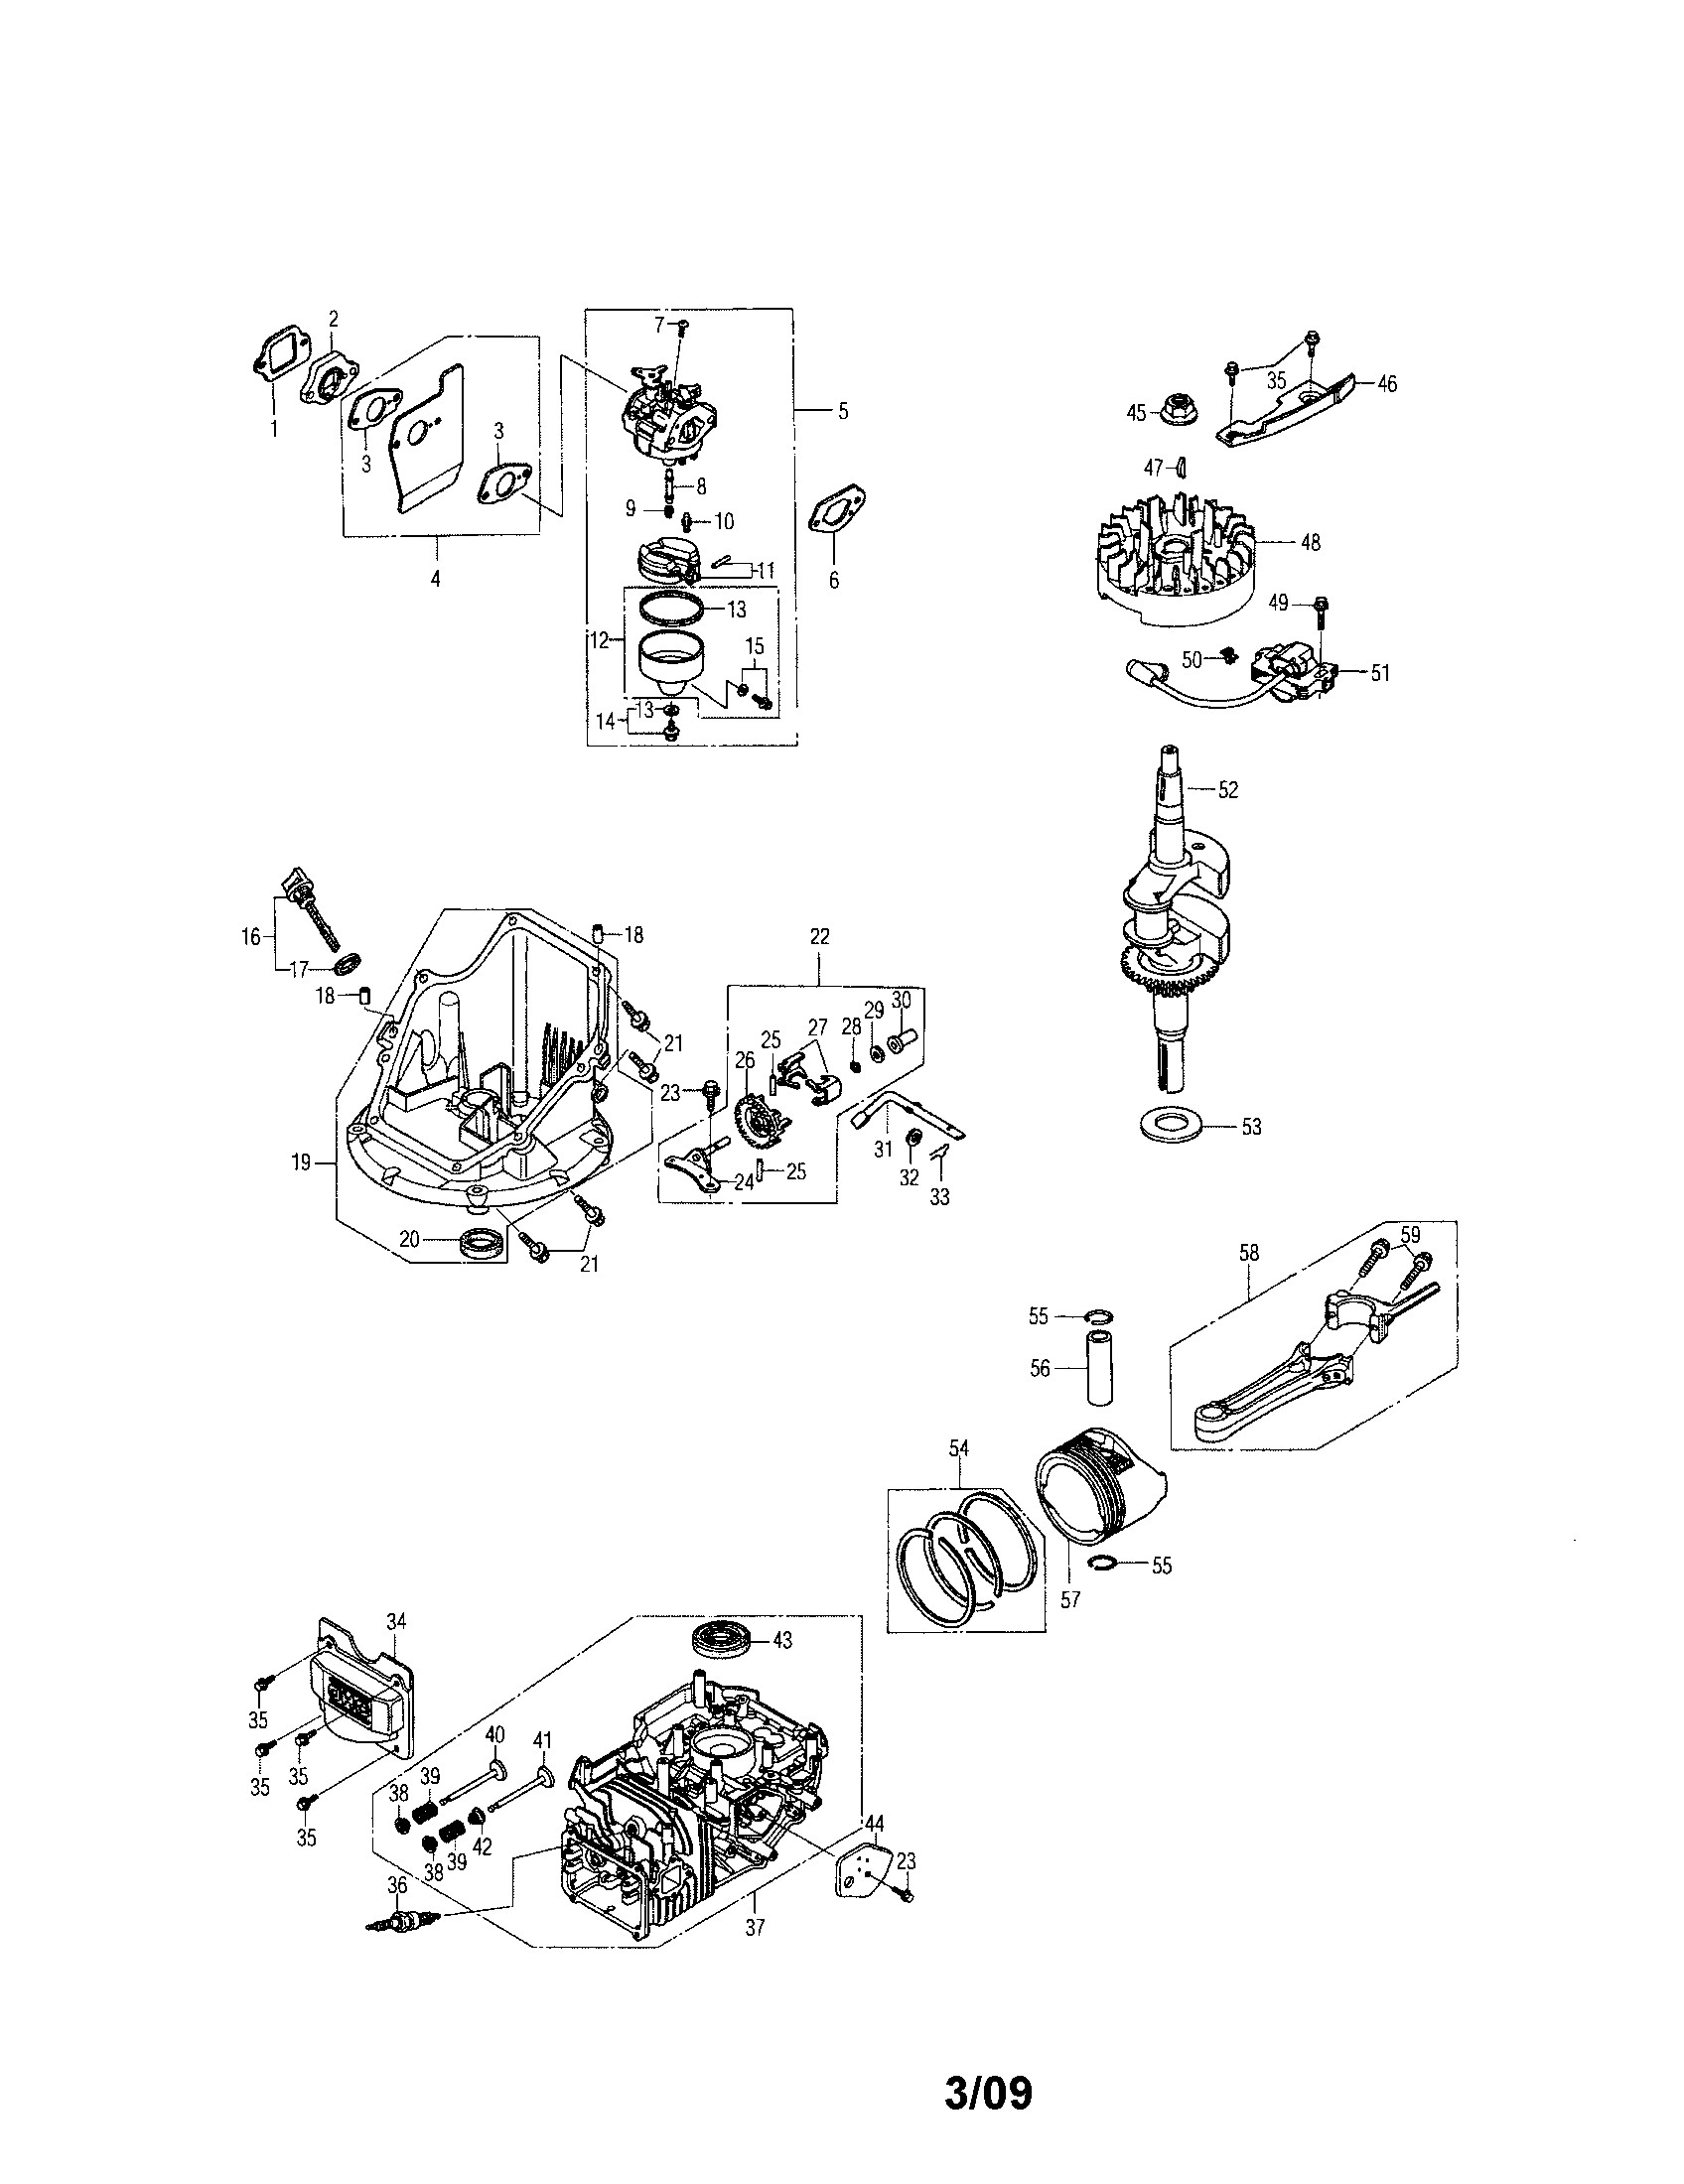 honda gc160 parts diagram honda model gcv160 lan5r engine